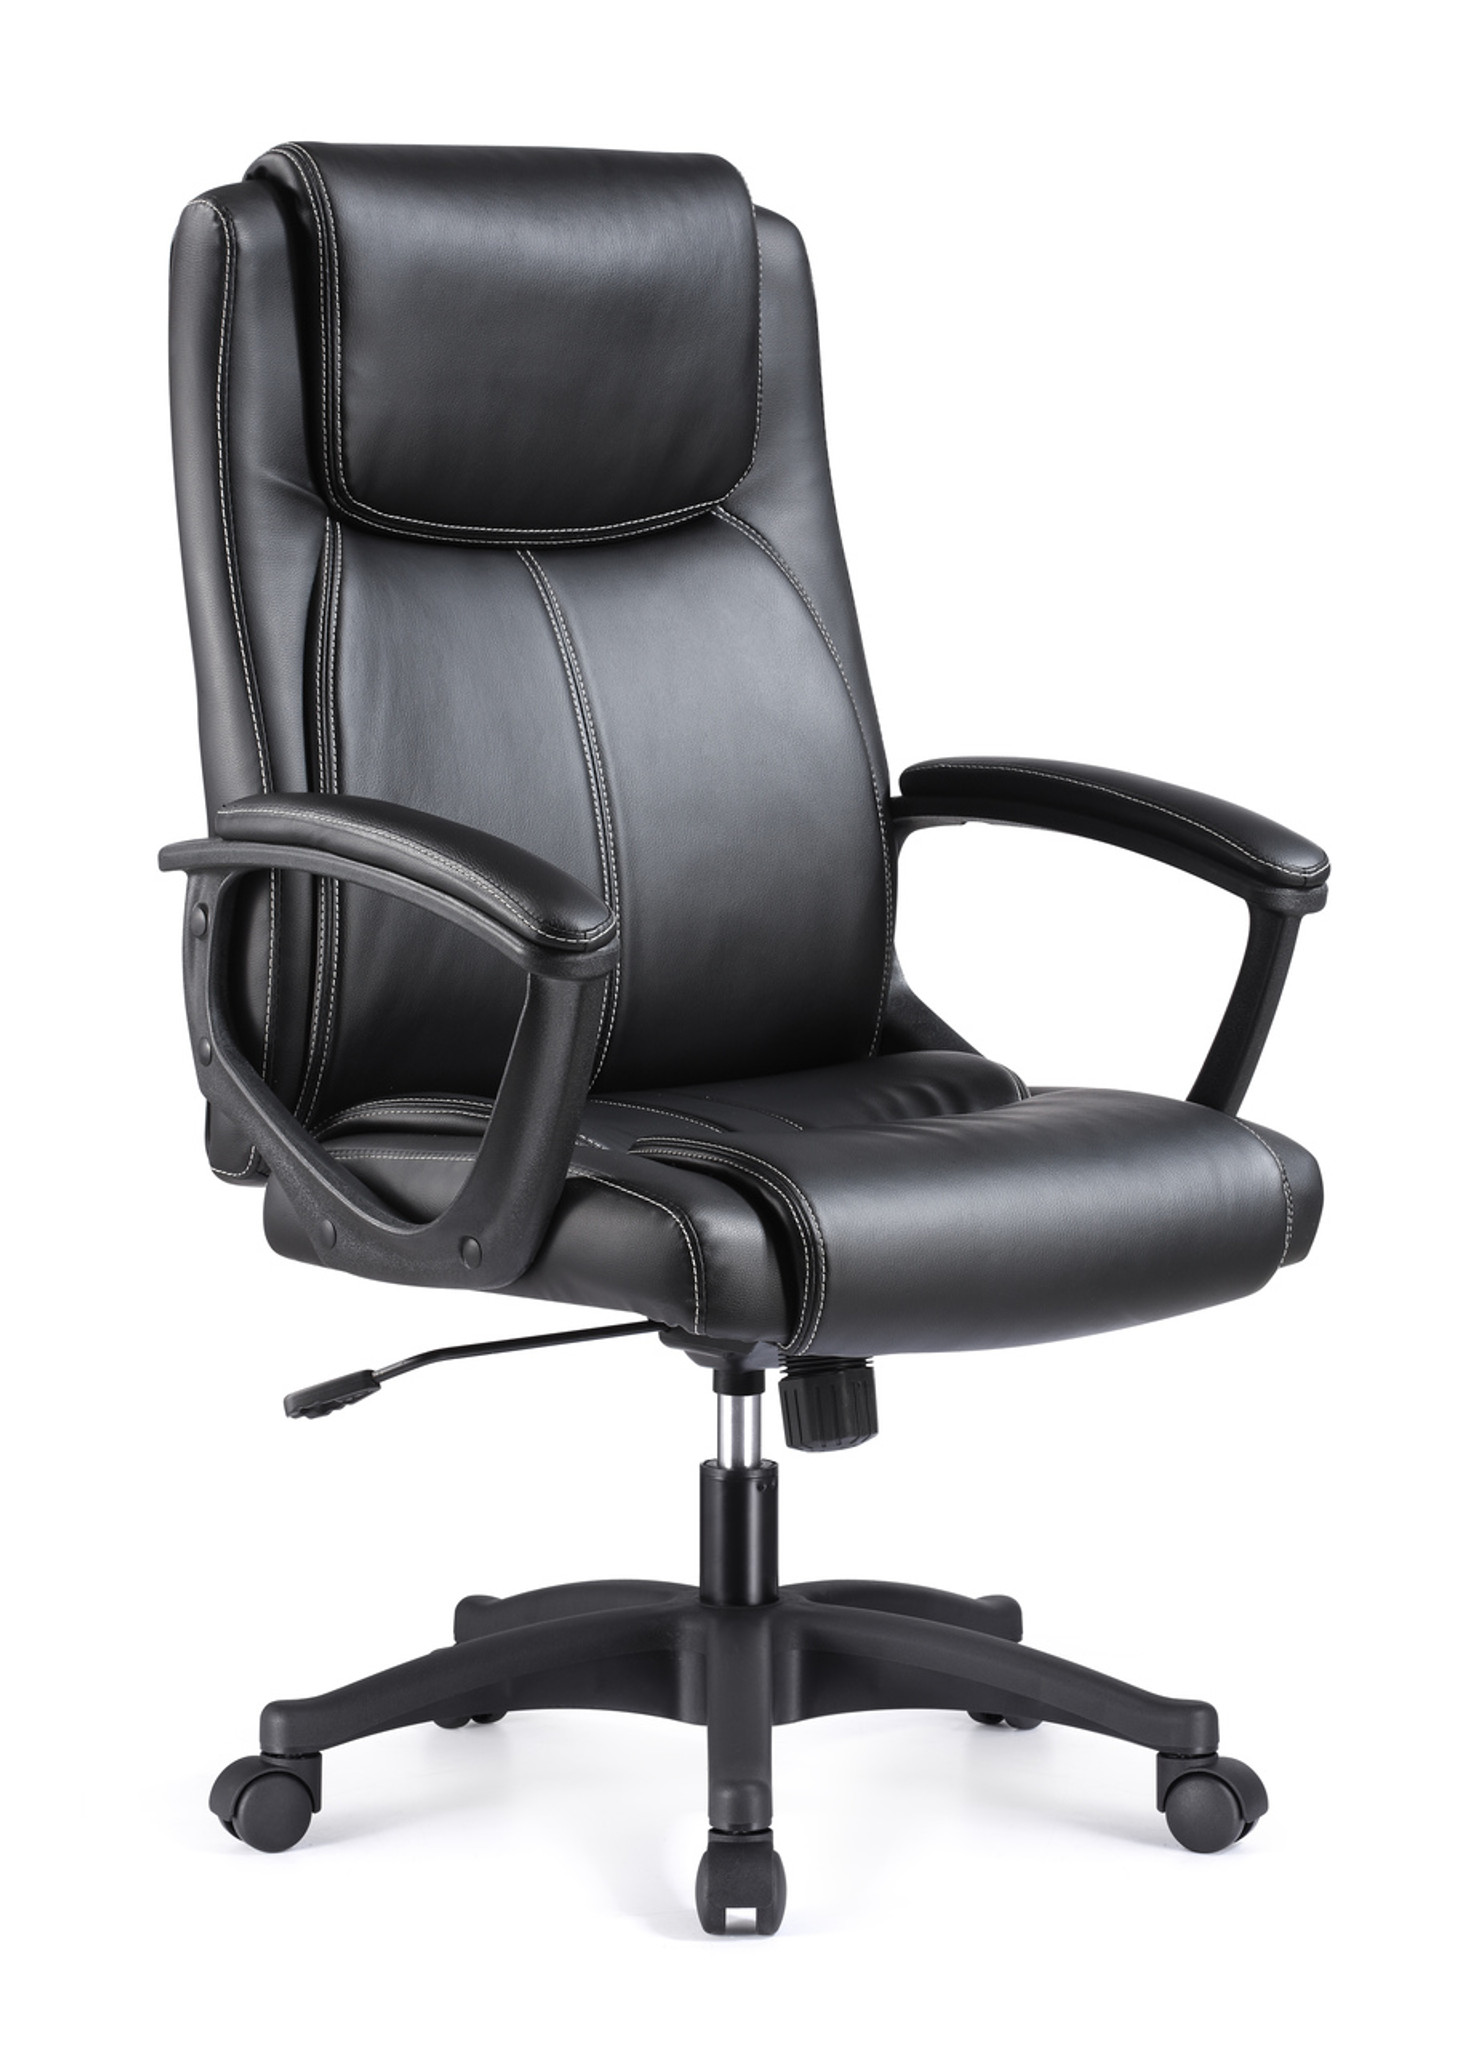 with down class chair desk office reclining ergonomic leather lay computer most footrest